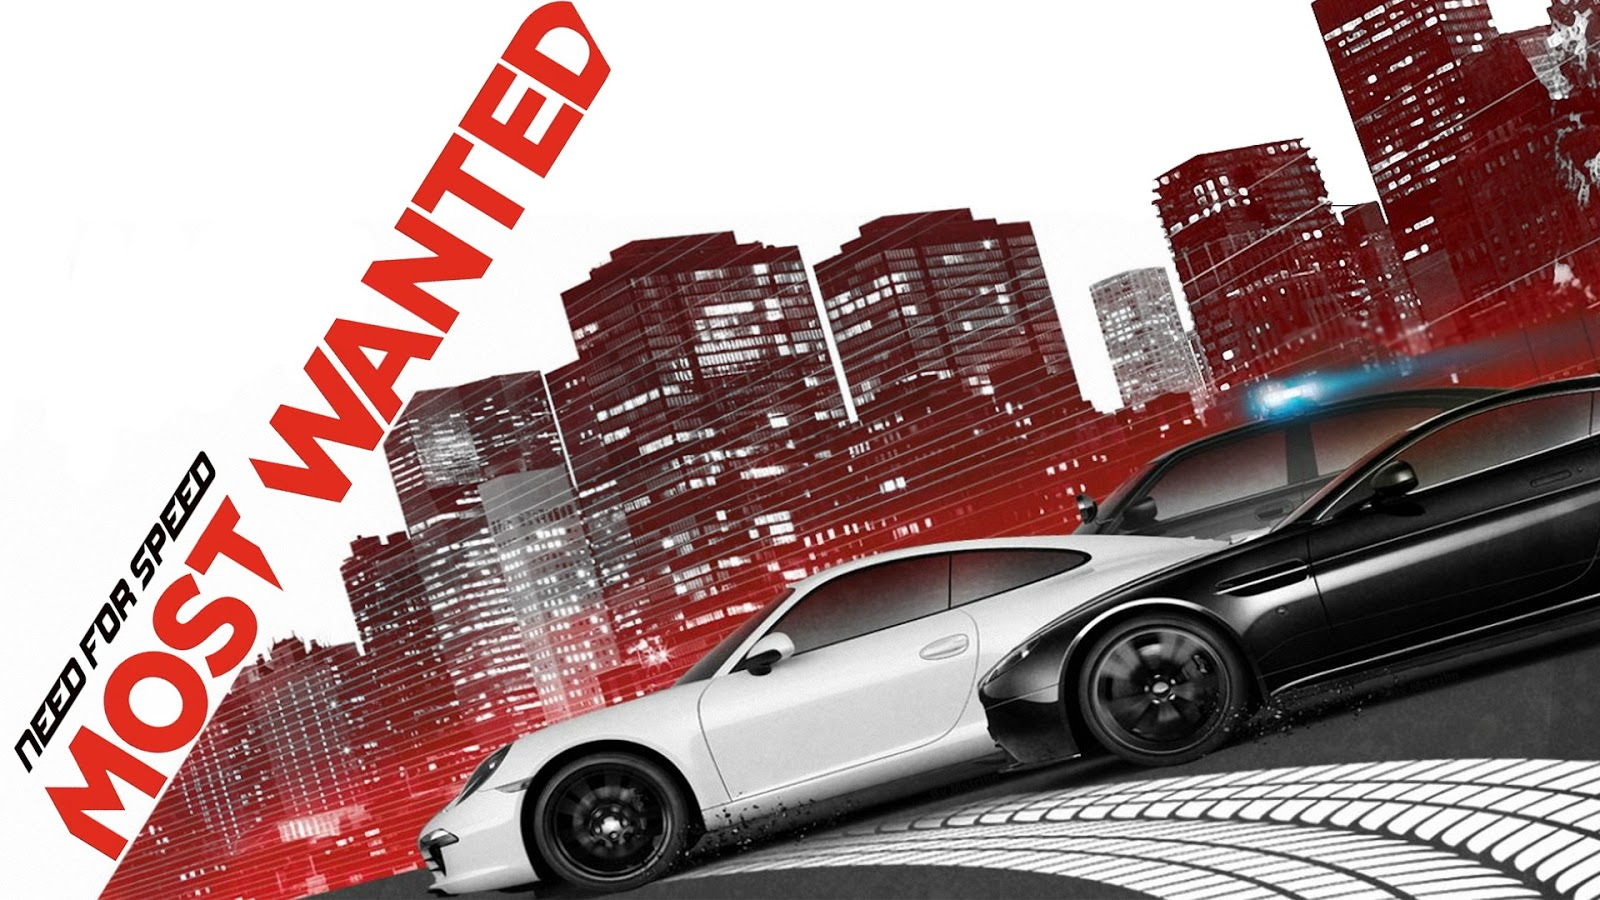 74 Need For Speed Most Wanted Wallpaper On Wallpapersafari